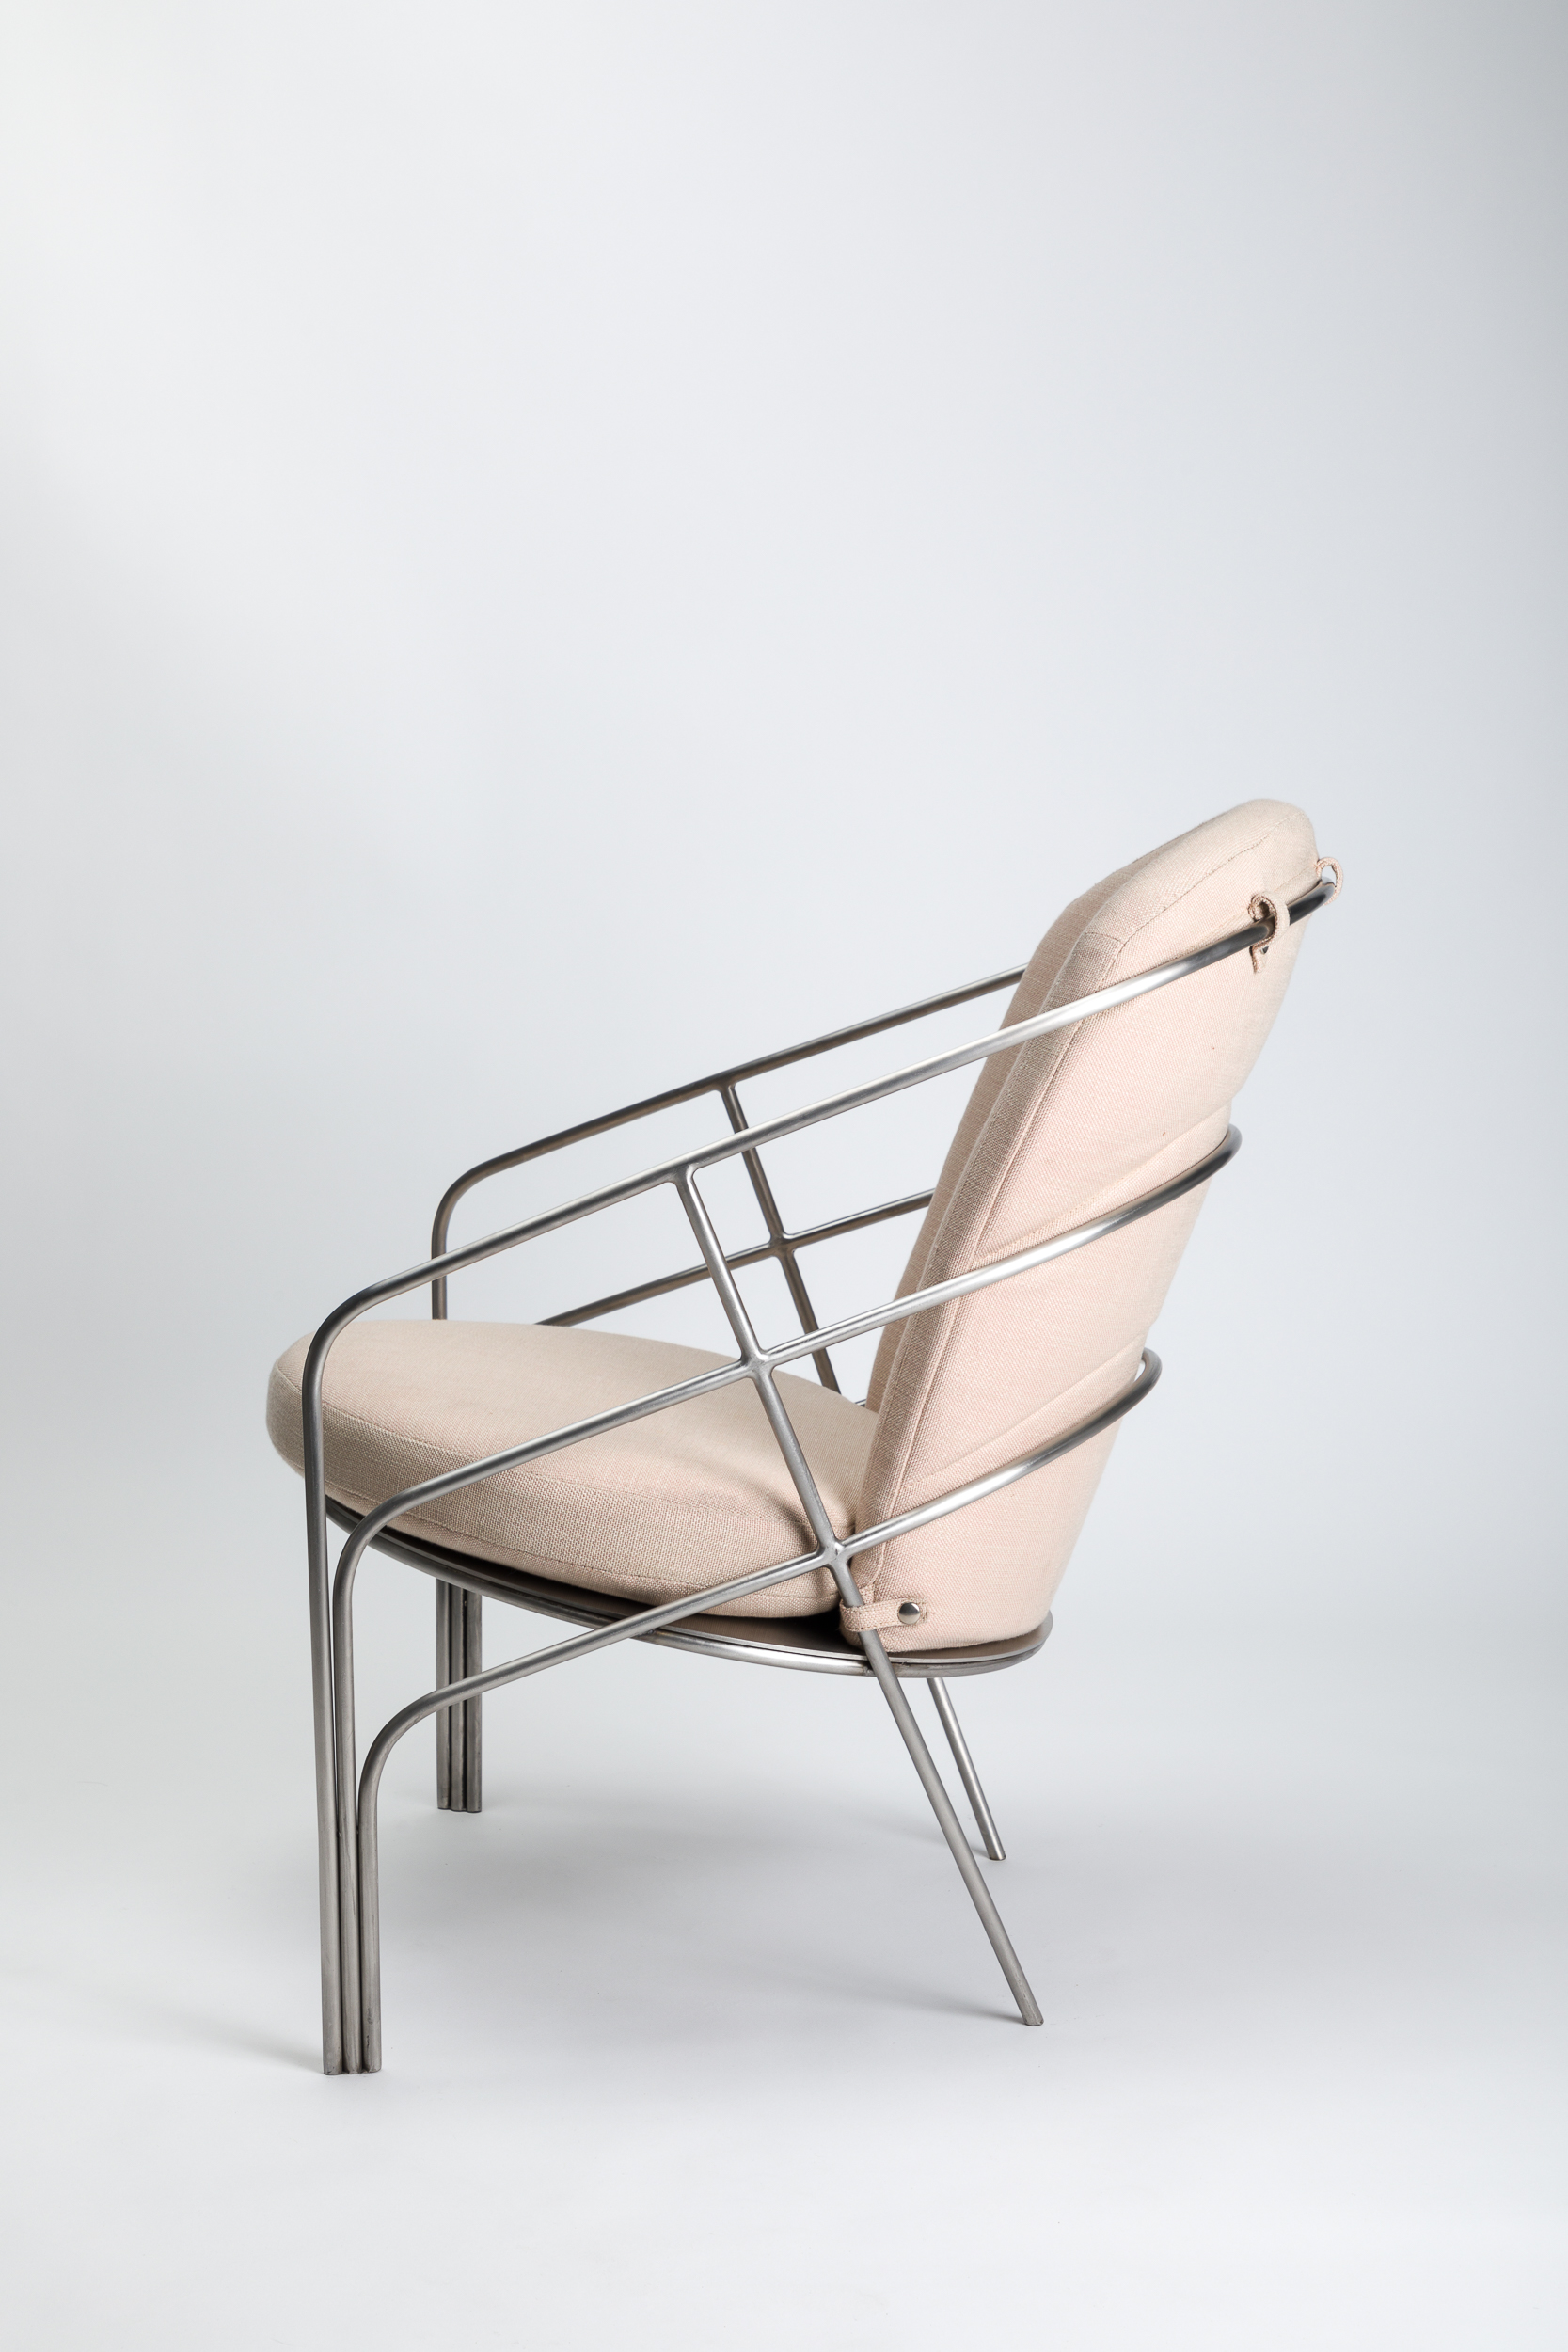 LAUN - DeMille Chair Stainless 005_photo credit Little League Studio.jpg